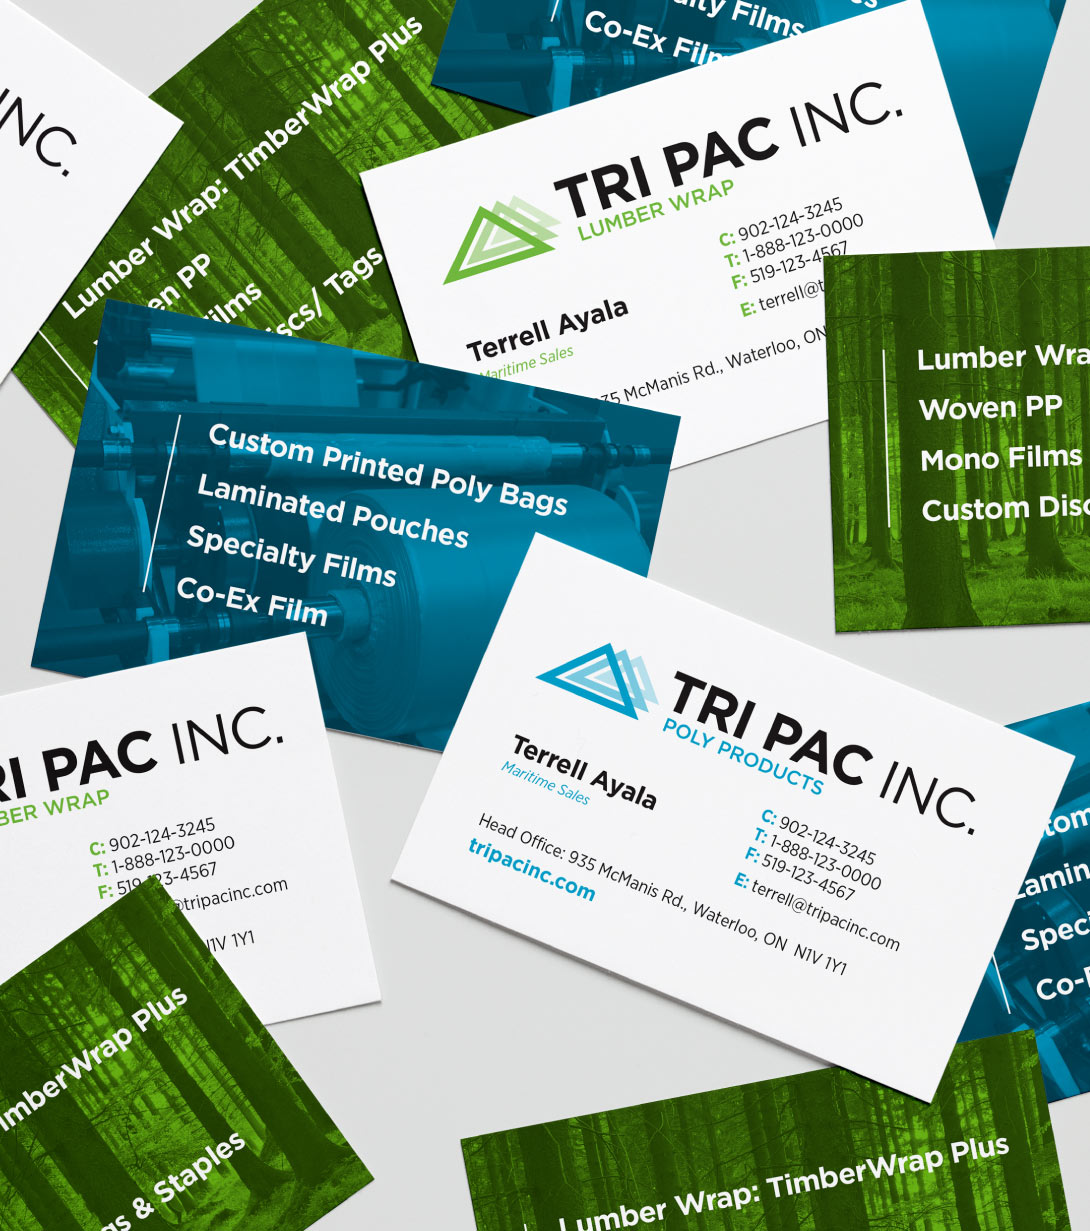 tripac-inc-business-cards-mockup